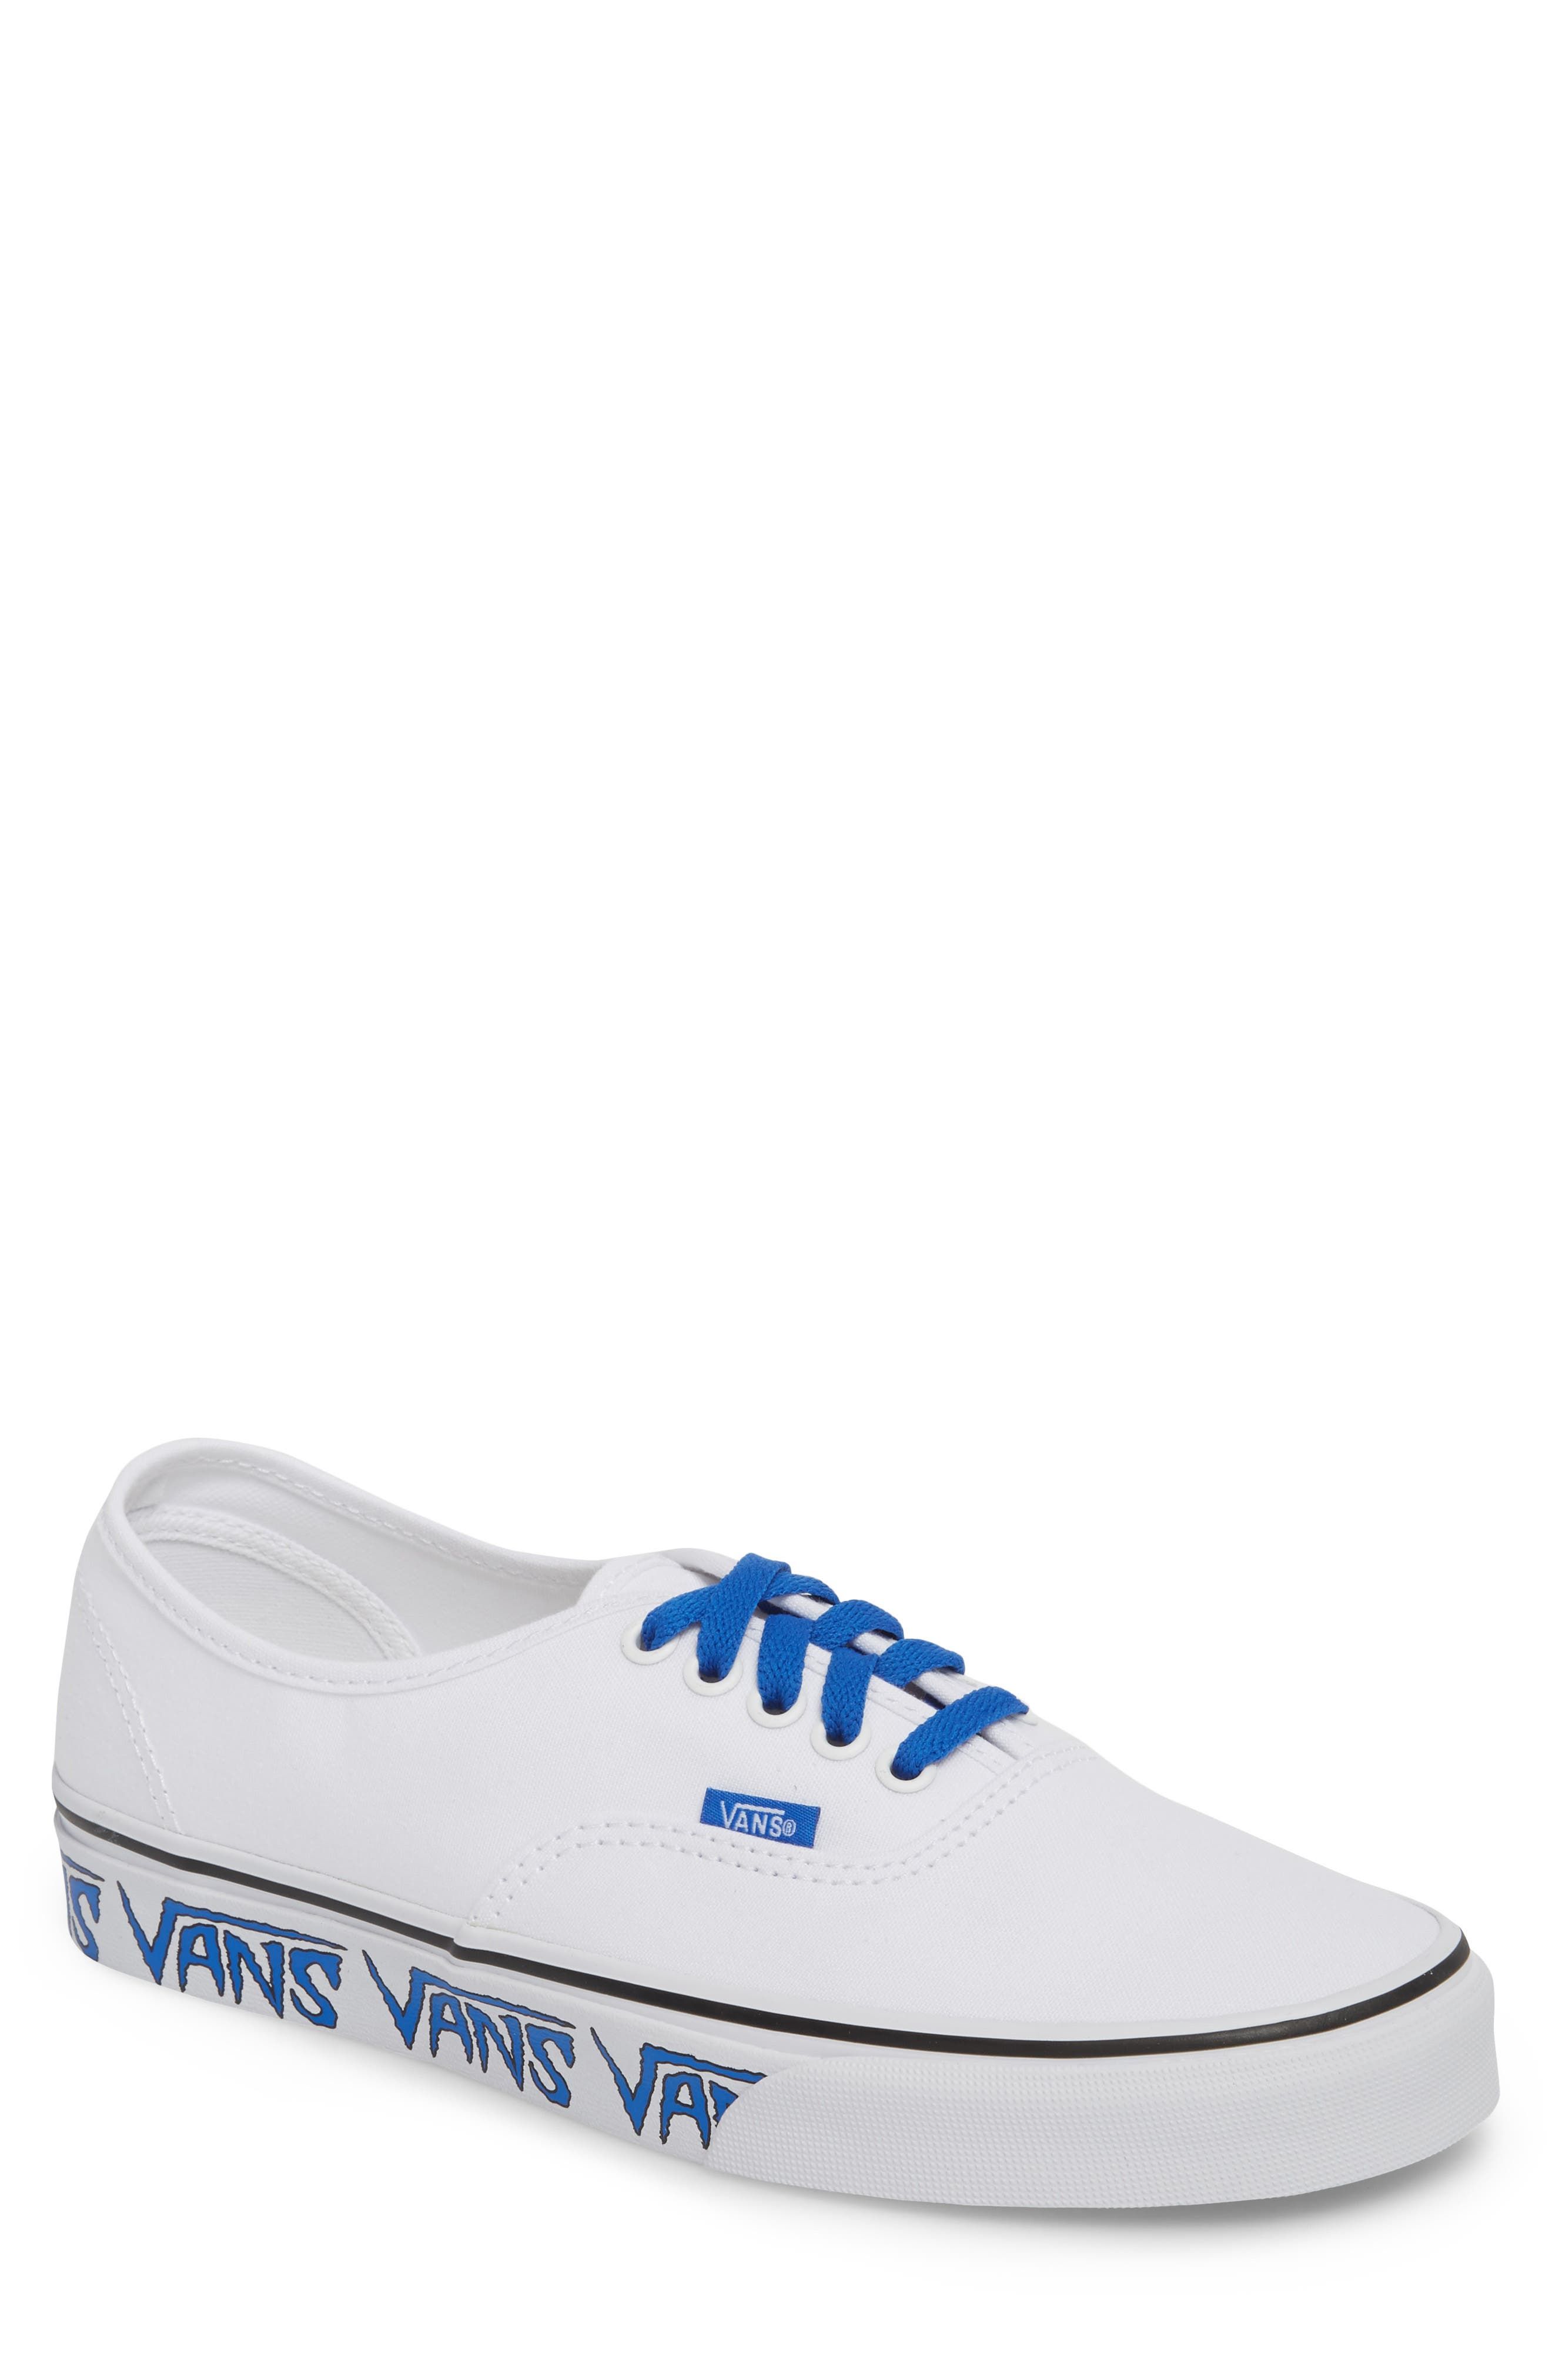 Authentic Sketch Sidewall Sneaker,                         Main,                         color, True White/ Victoria Blue